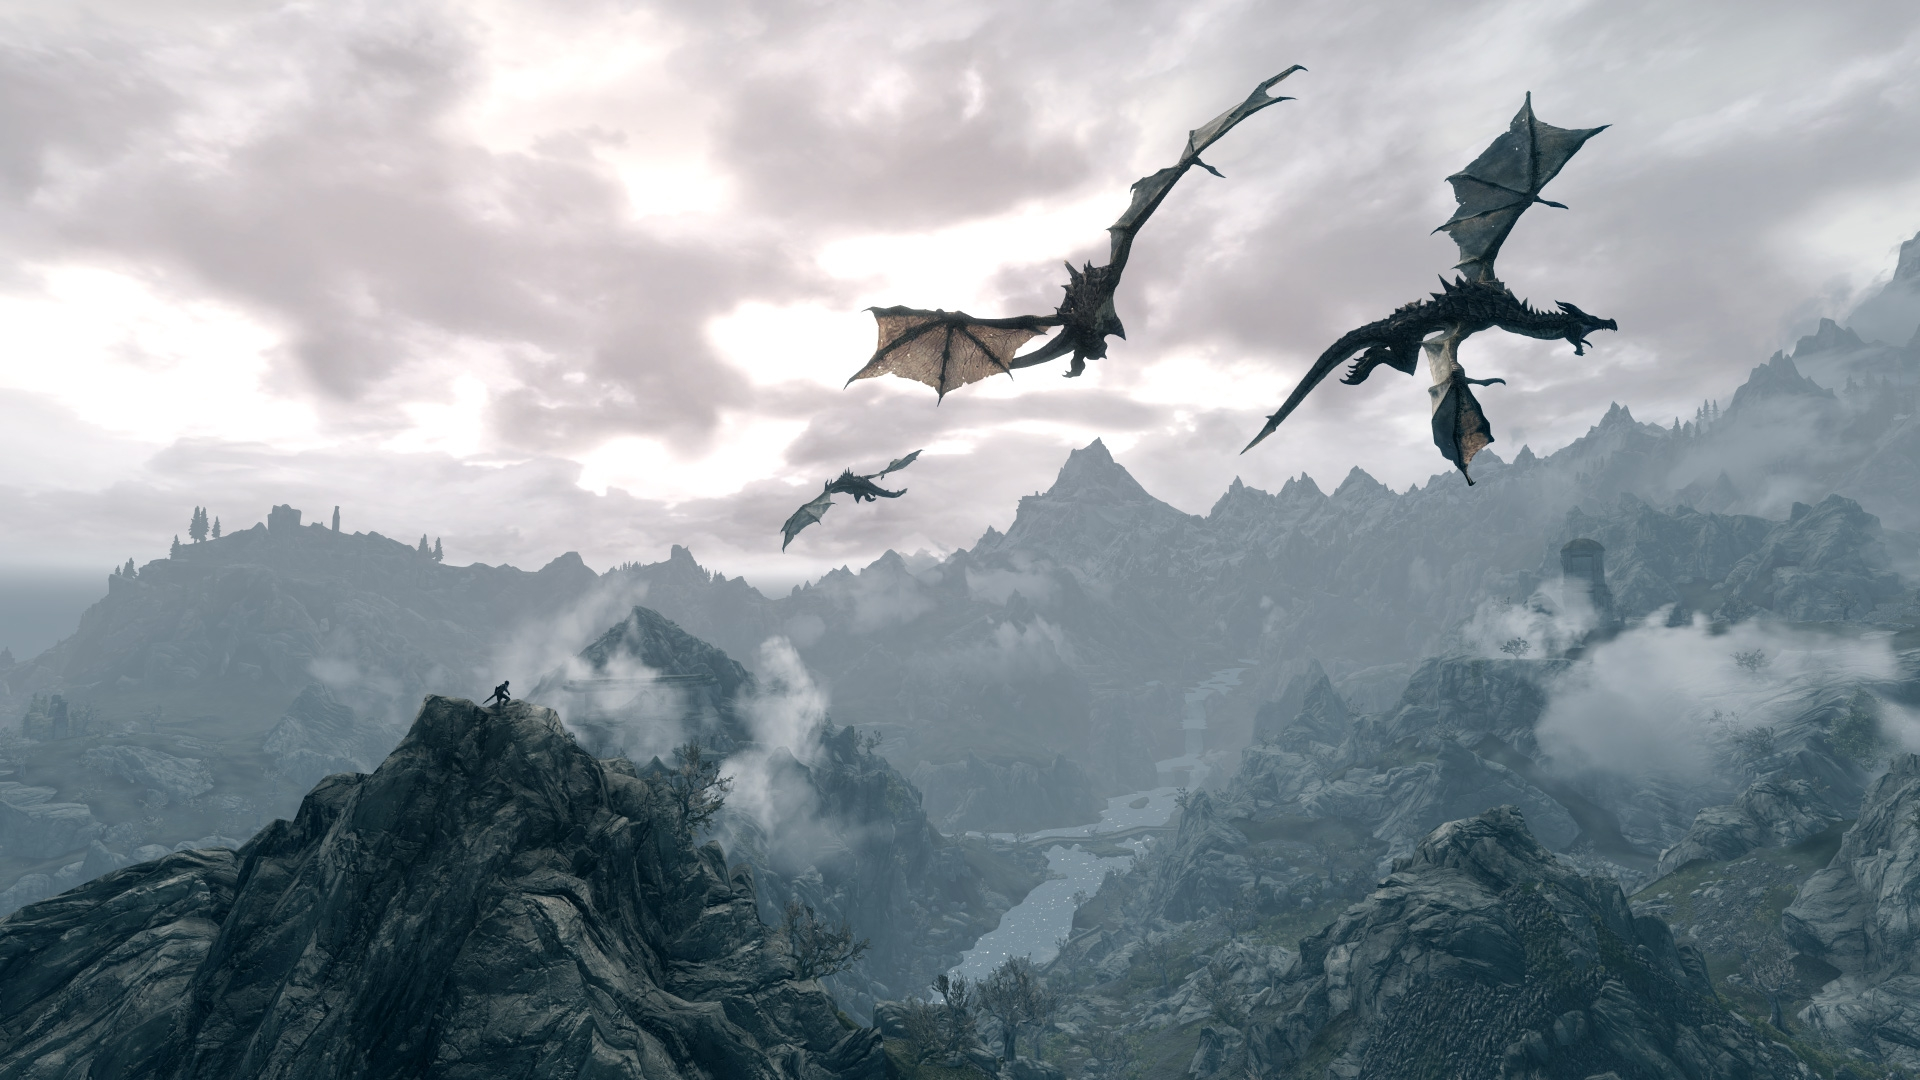 Cool Wallpaper Mountain Dragon - the_elder_scrolls_dragons_fly_mountains_sky_21290_1920x1080  Pictures_142647.jpg